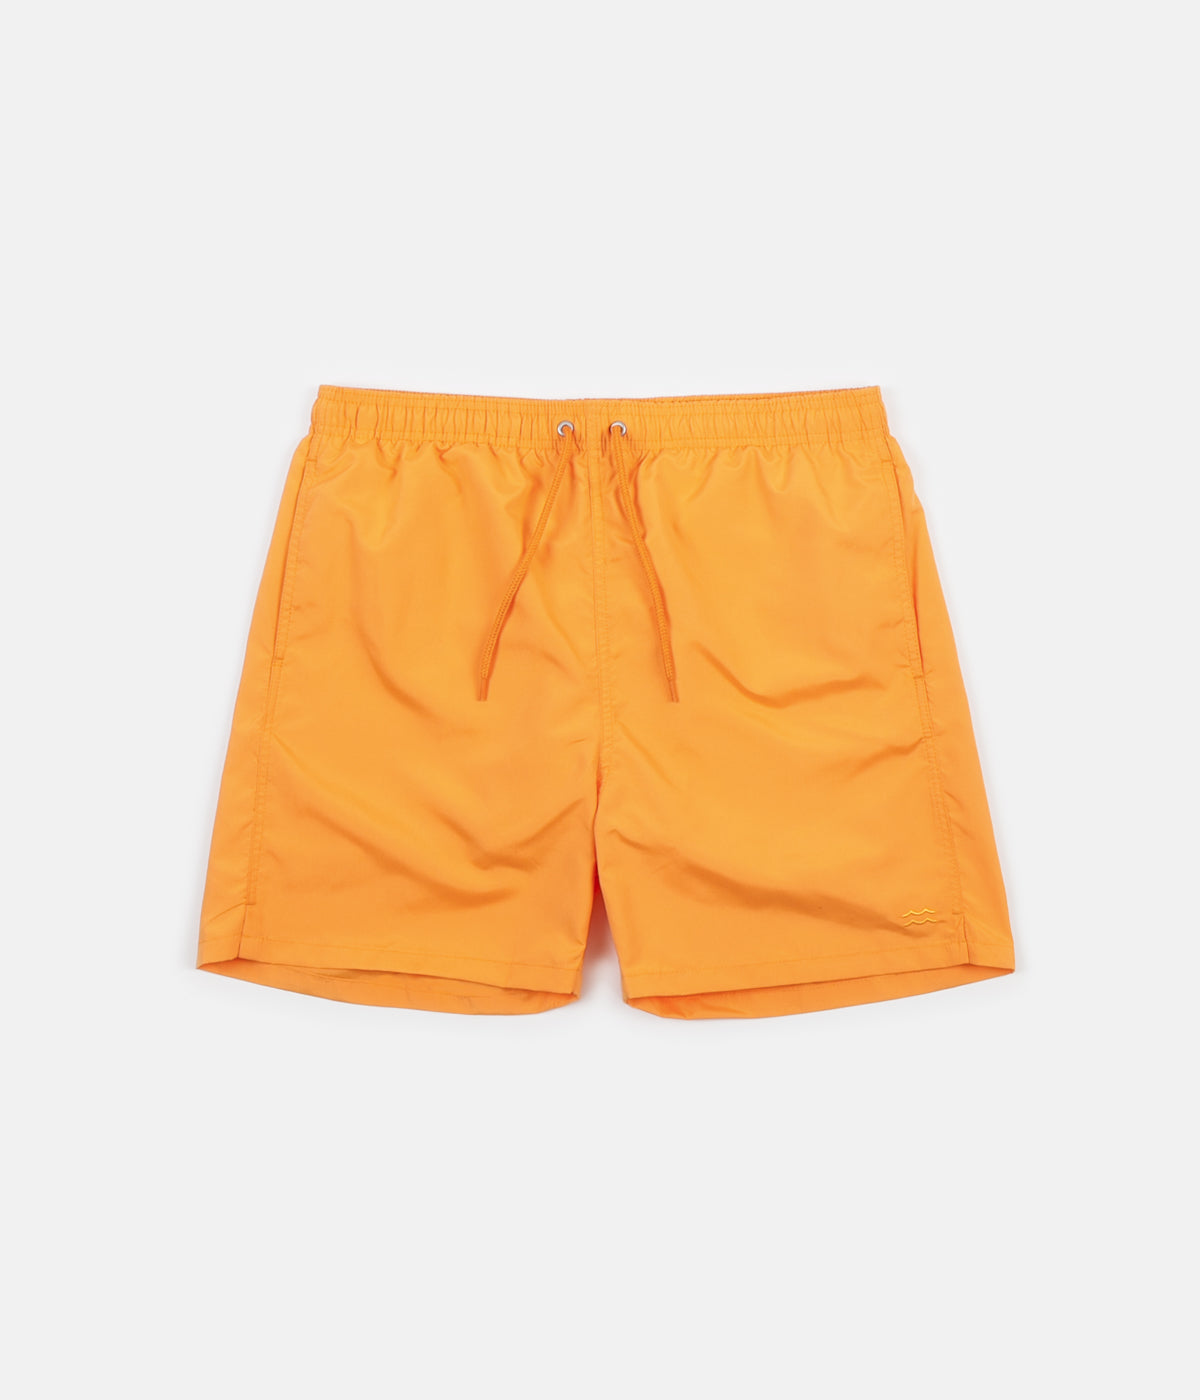 4b13538068 Norse Projects Hauge Swim Shorts - Sunwashed Yellow | Always in Colour